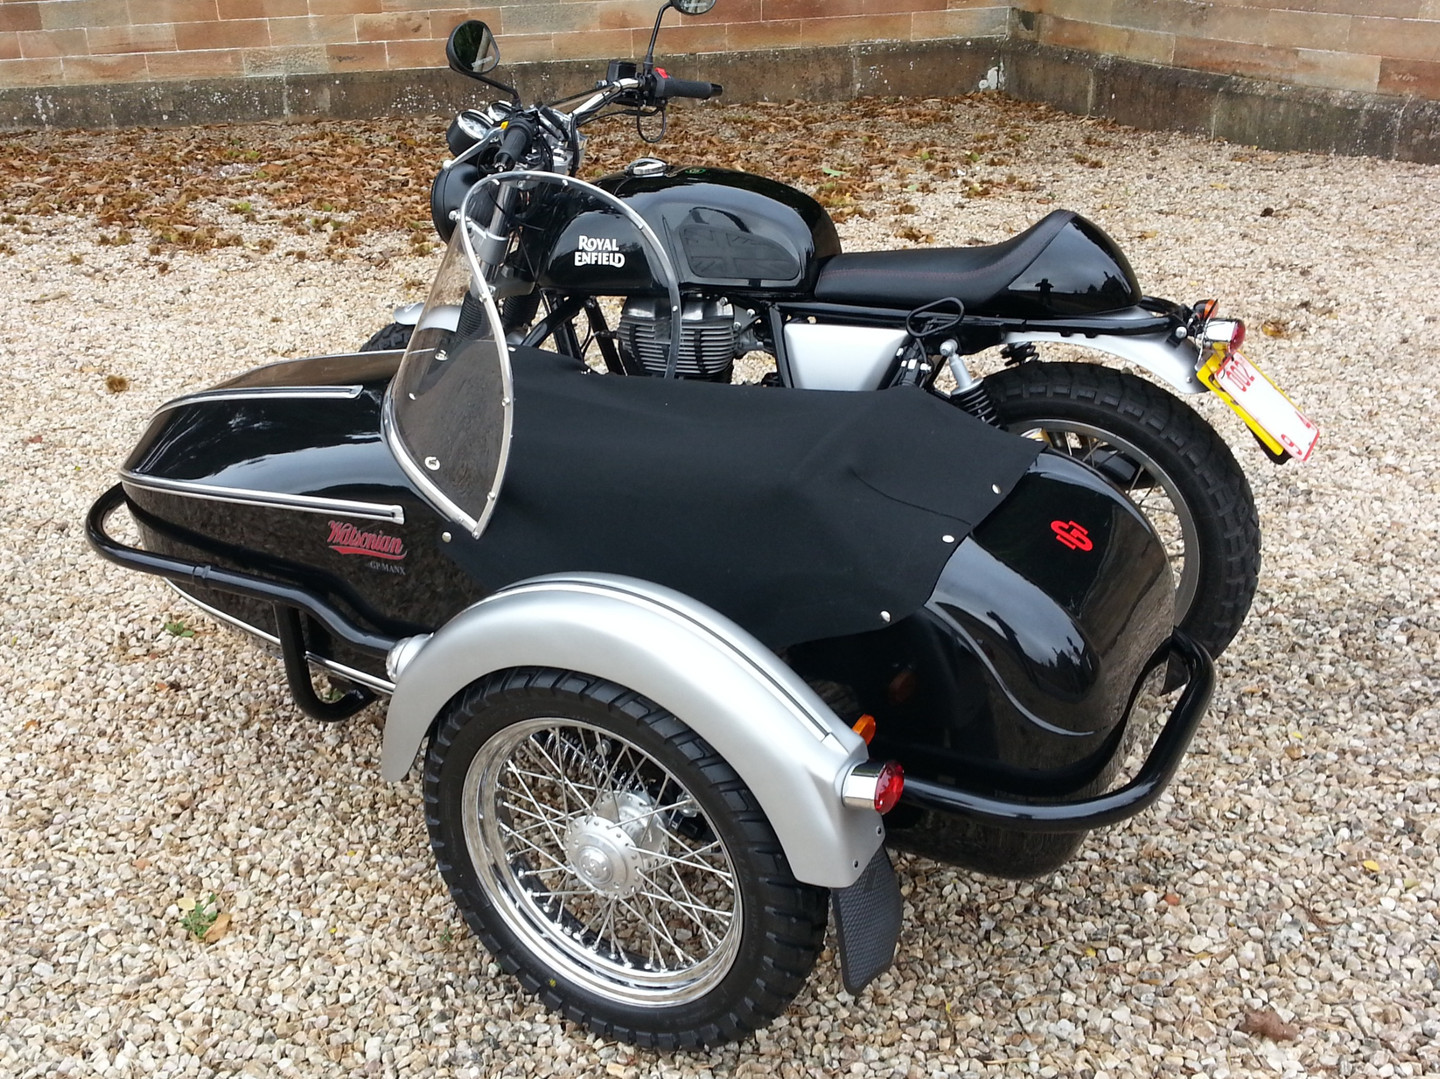 Gusto Motorbikes_Royal Enfield 535 Special Sidecar Combination